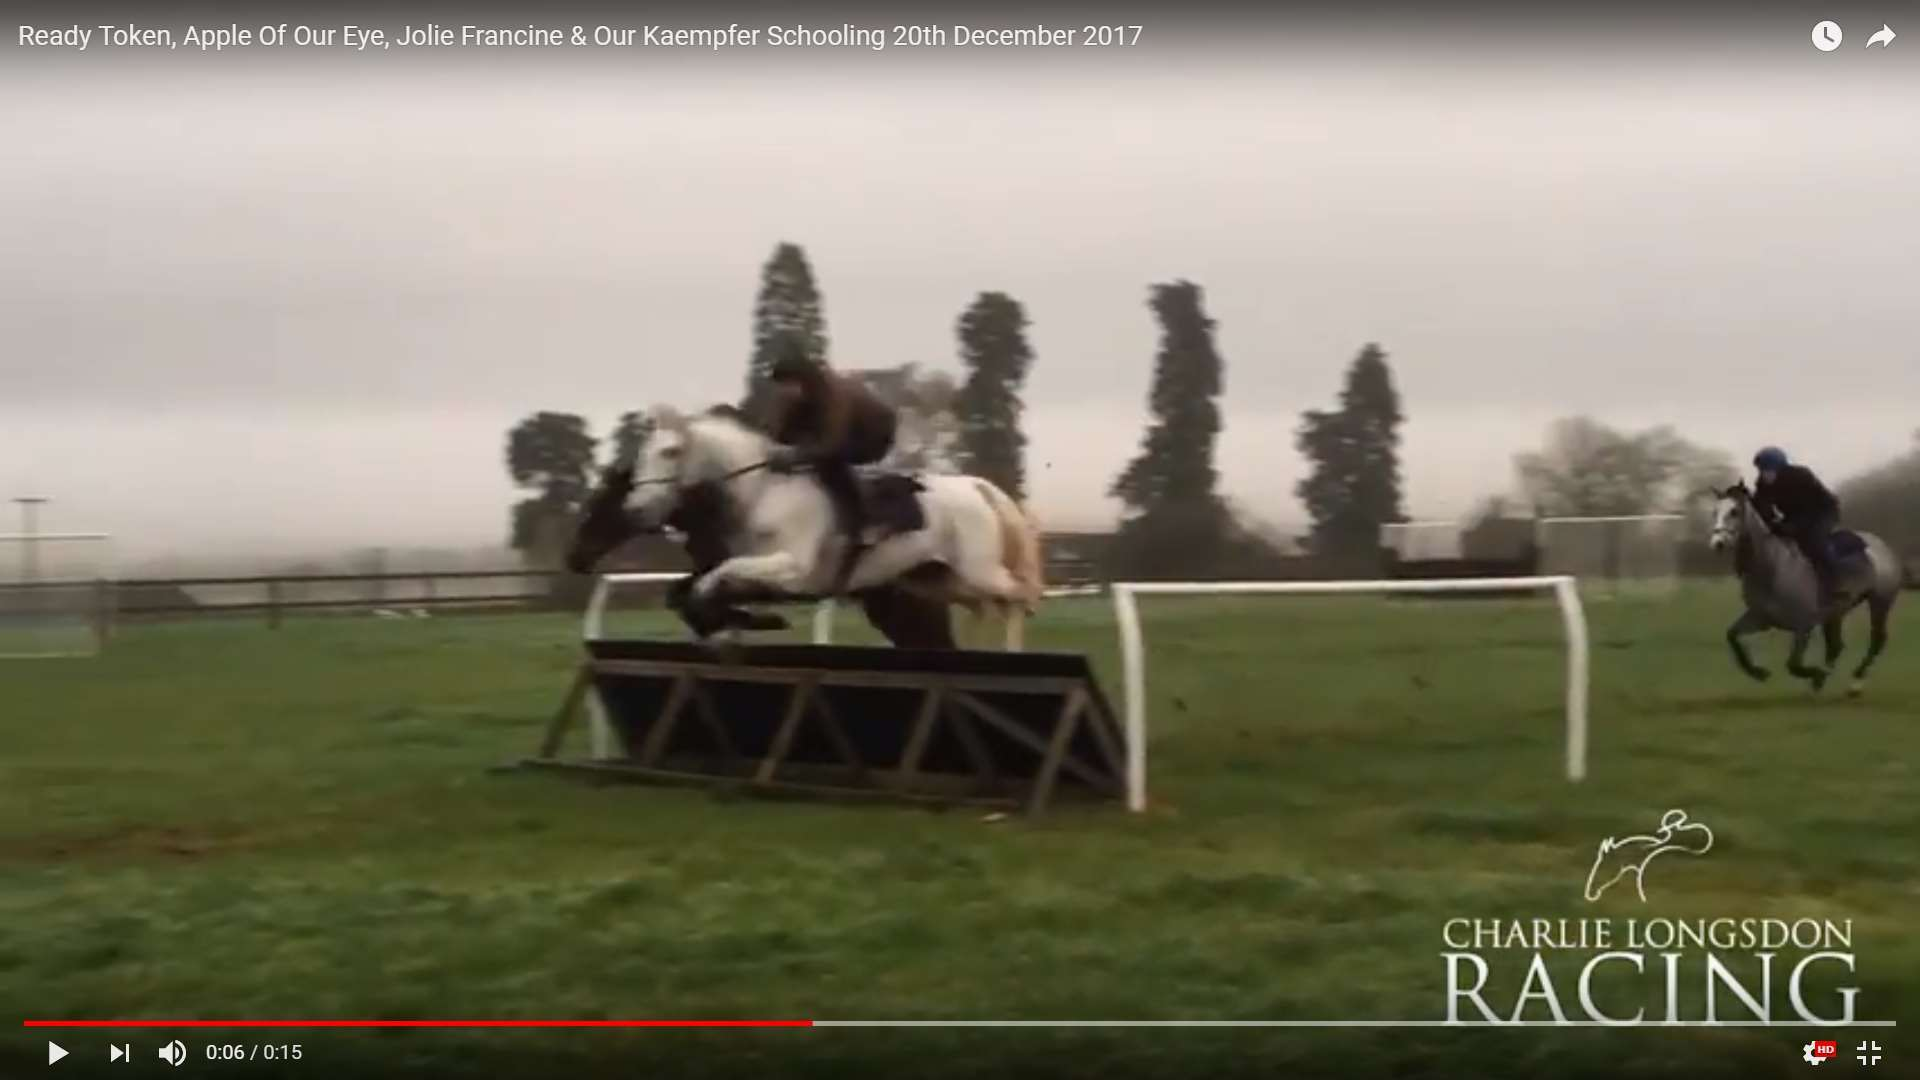 Schooling - Ready Token, Apple Of Our Eye, Our Kaempfer & Joile Francine 20th December 2017